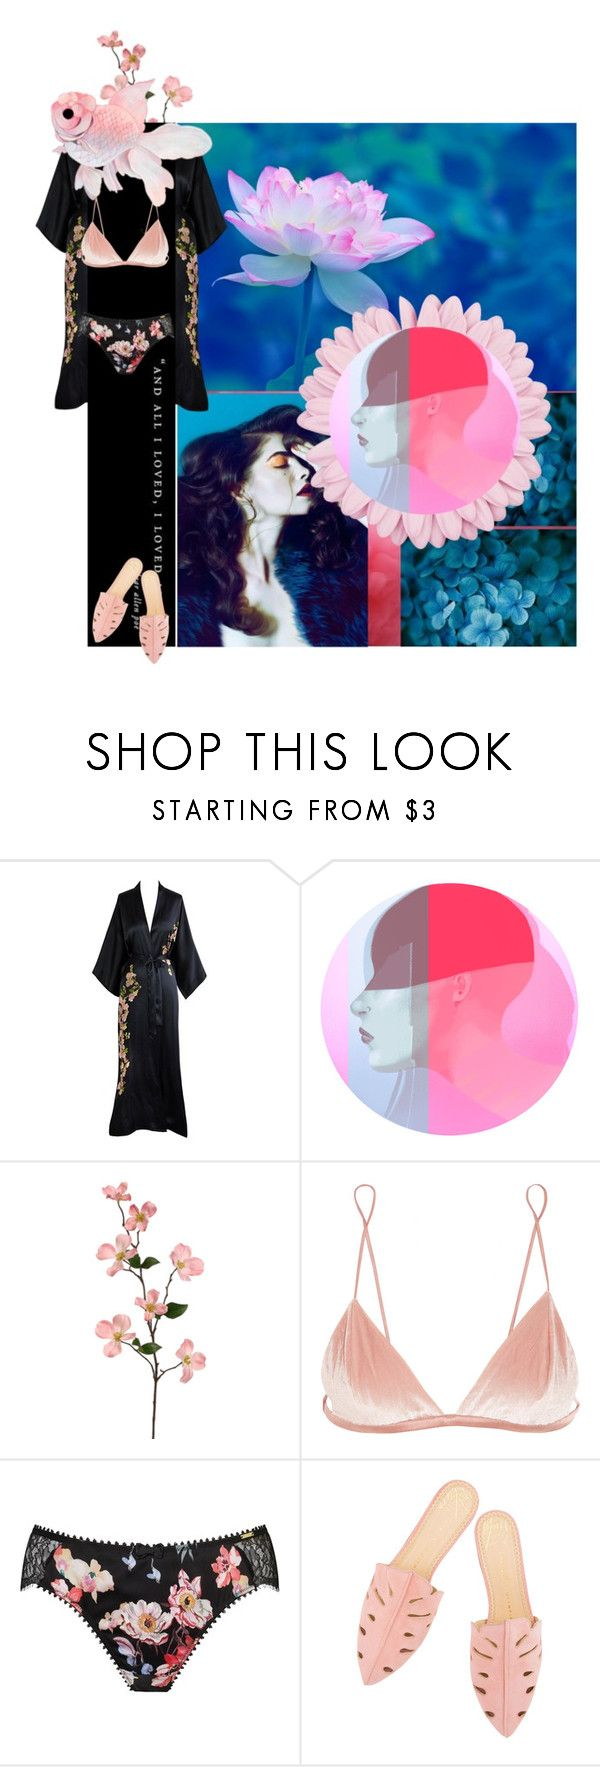 """Down Under"" by kayci ❤ liked on Polyvore featuring Fleur du Mal, Somerset by Alice Temperley and lingerie"